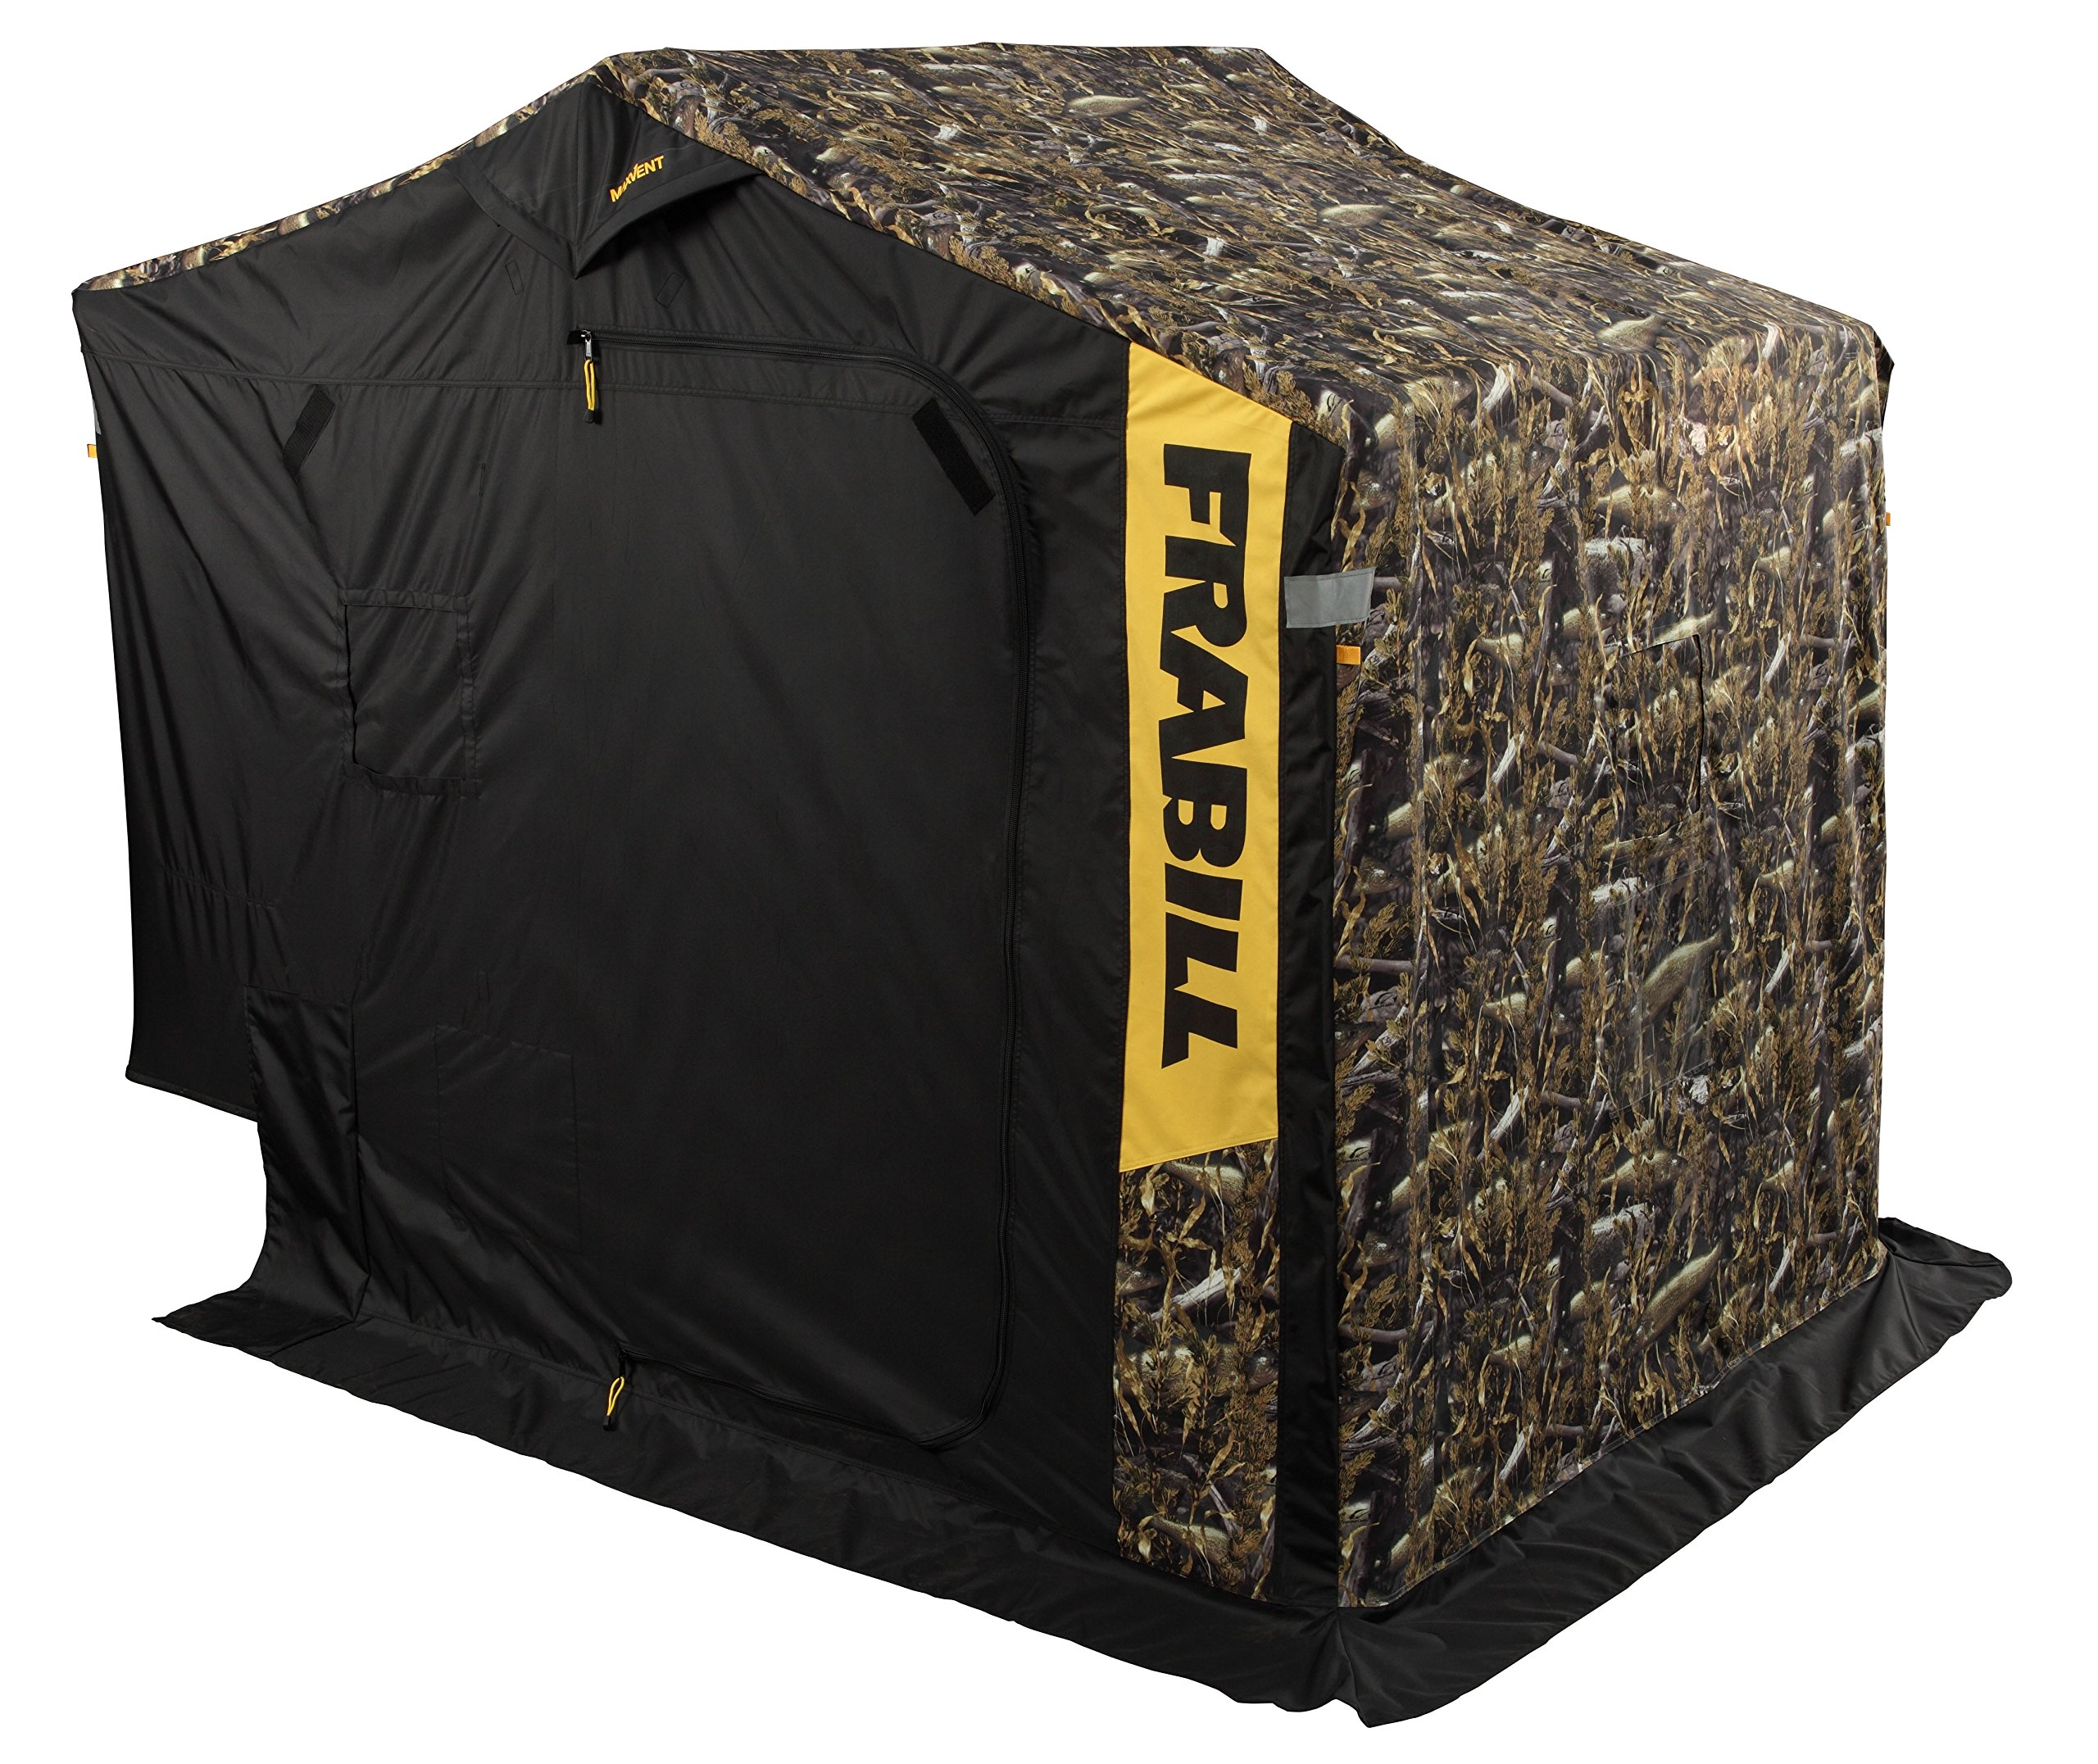 Frabill 6154 Fishouflage Ambush DLX Shelter with Side Door by Frabill